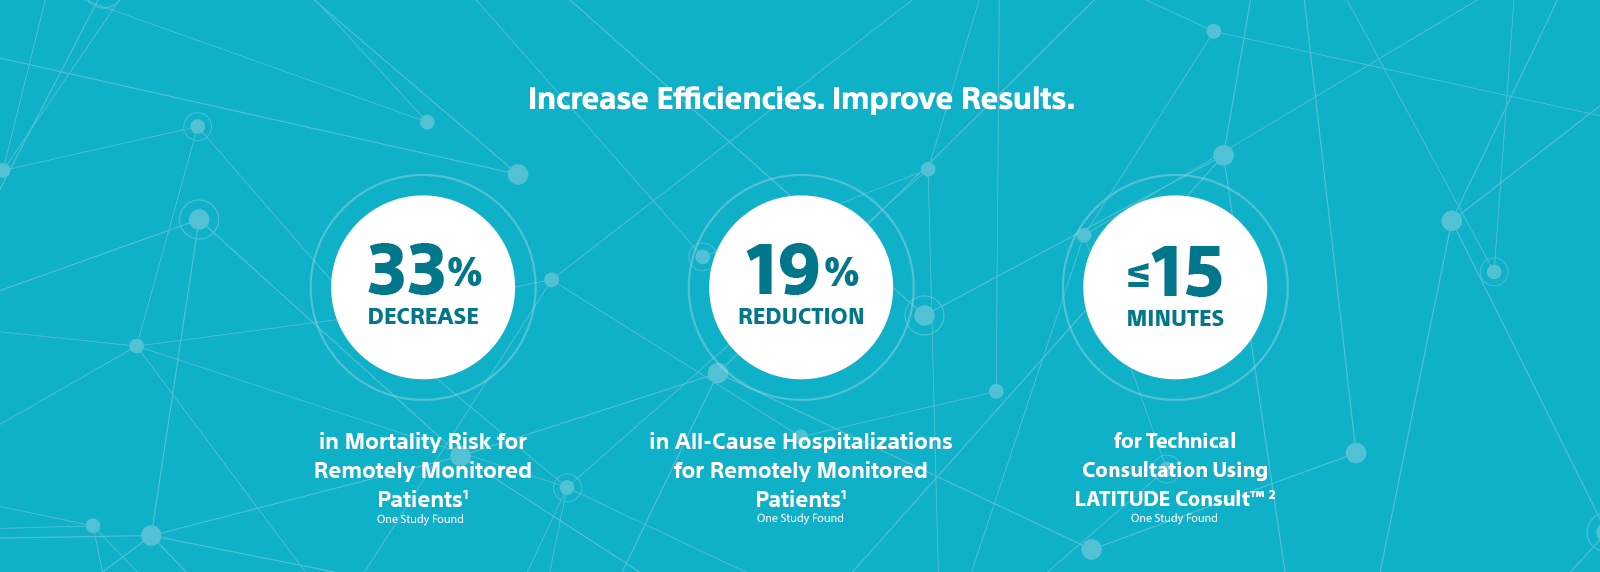 Graphic showing a 33% decrease in mortality risk for remotely monitored patients, a 19% reduction in all-cause hospitalizations for remotely monitored patients, and ≤15 minutes for technical consultation using LATITUDE Consult™